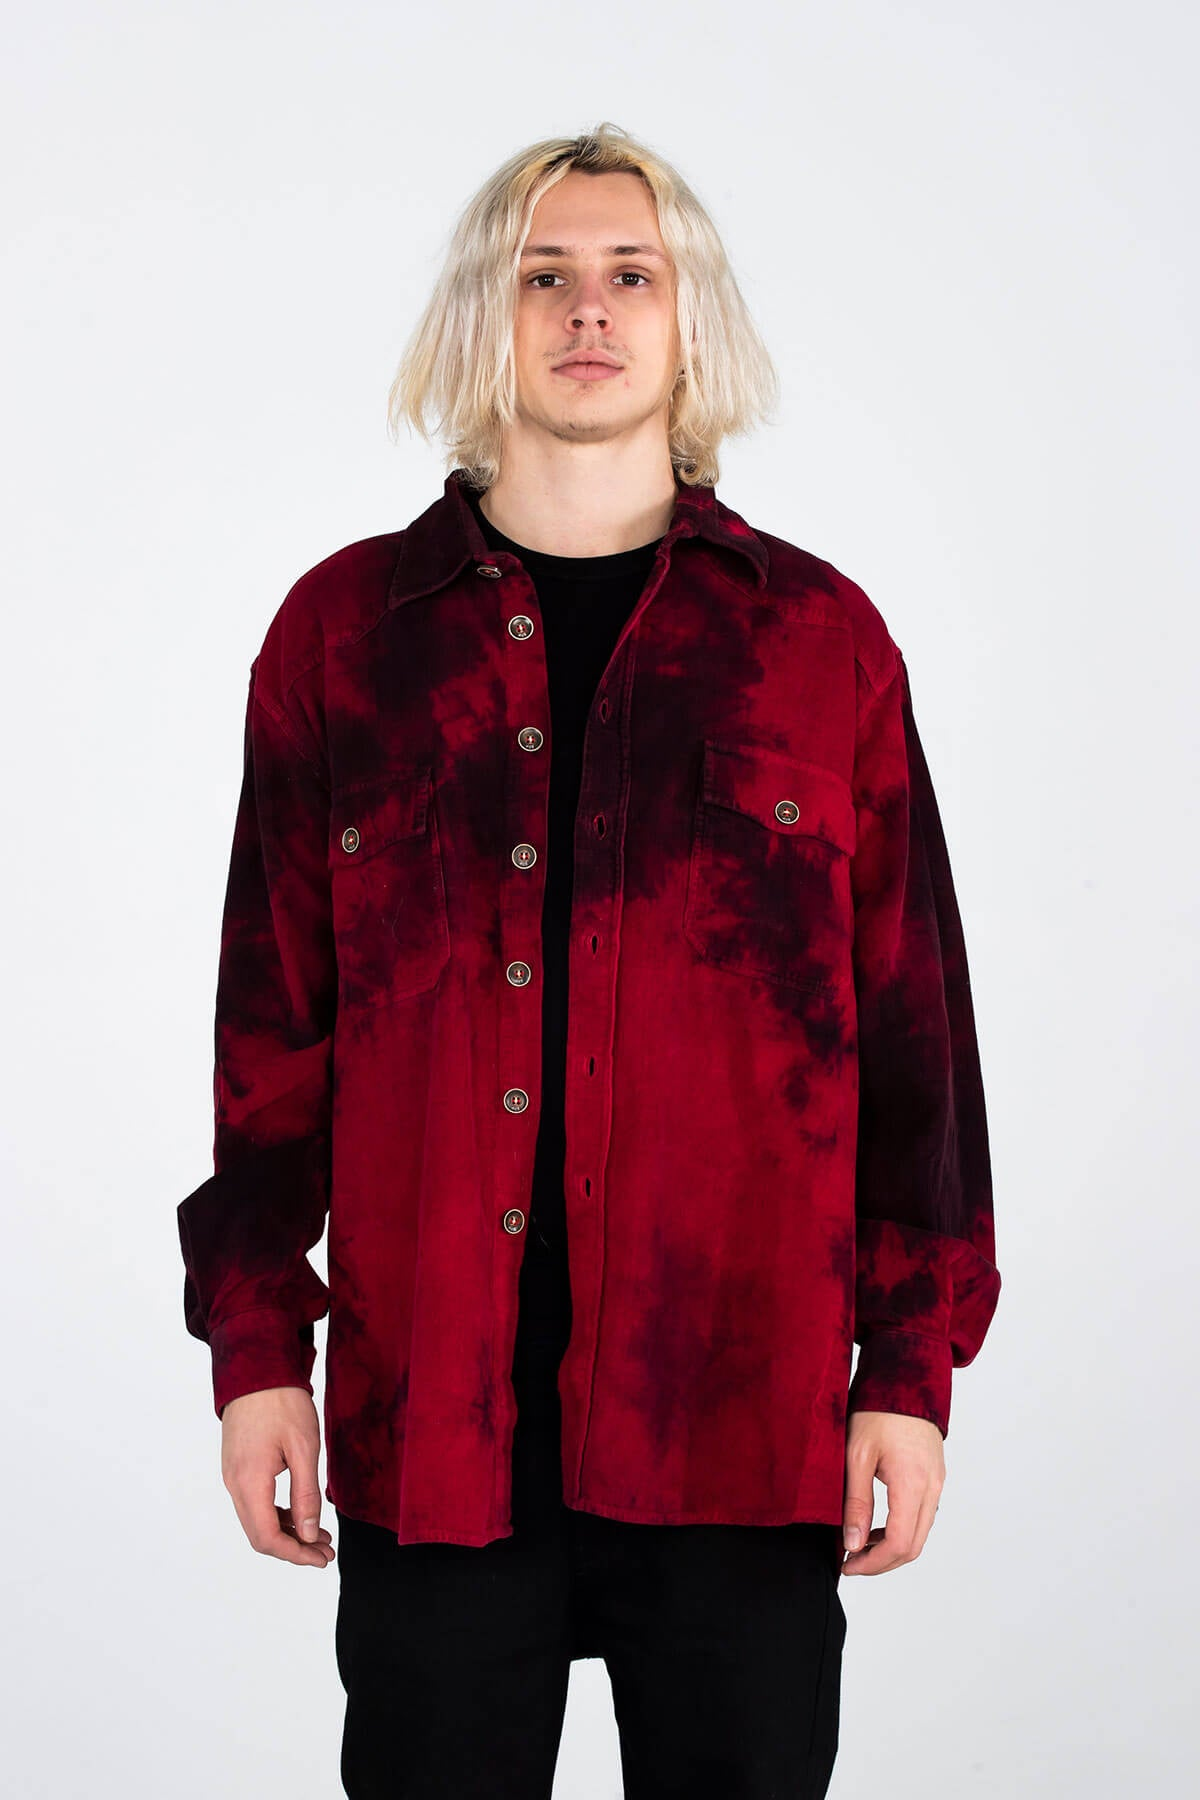 MJB RED ROCKER WORLD OVERSHIRT - TOP - MJB